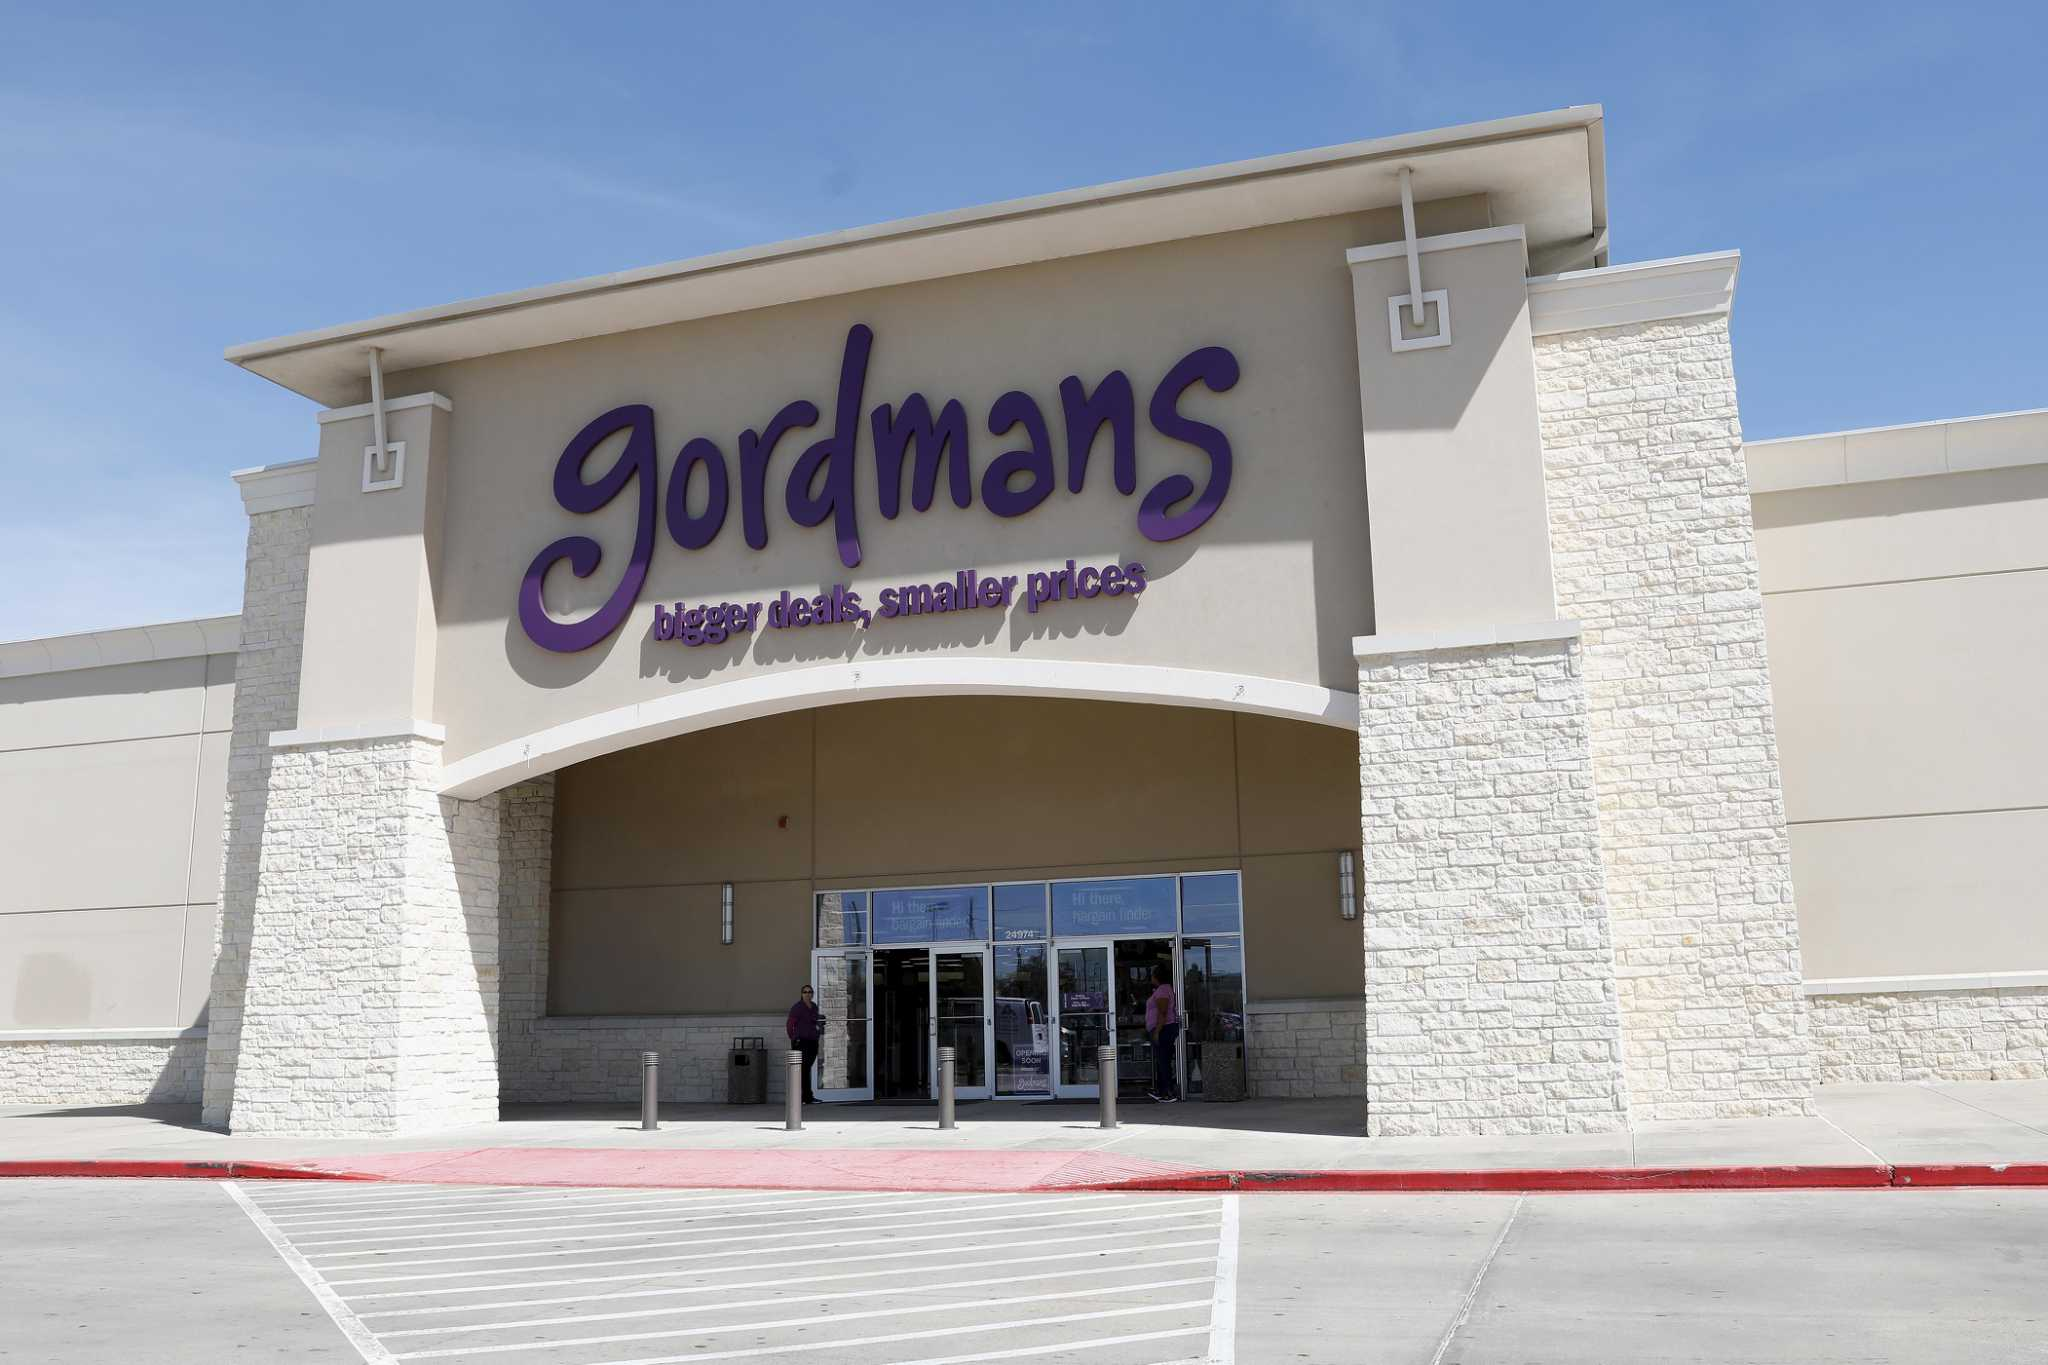 cf360d981ad Gordmans to open stores in Spring and Atascocita - Houston Chronicle